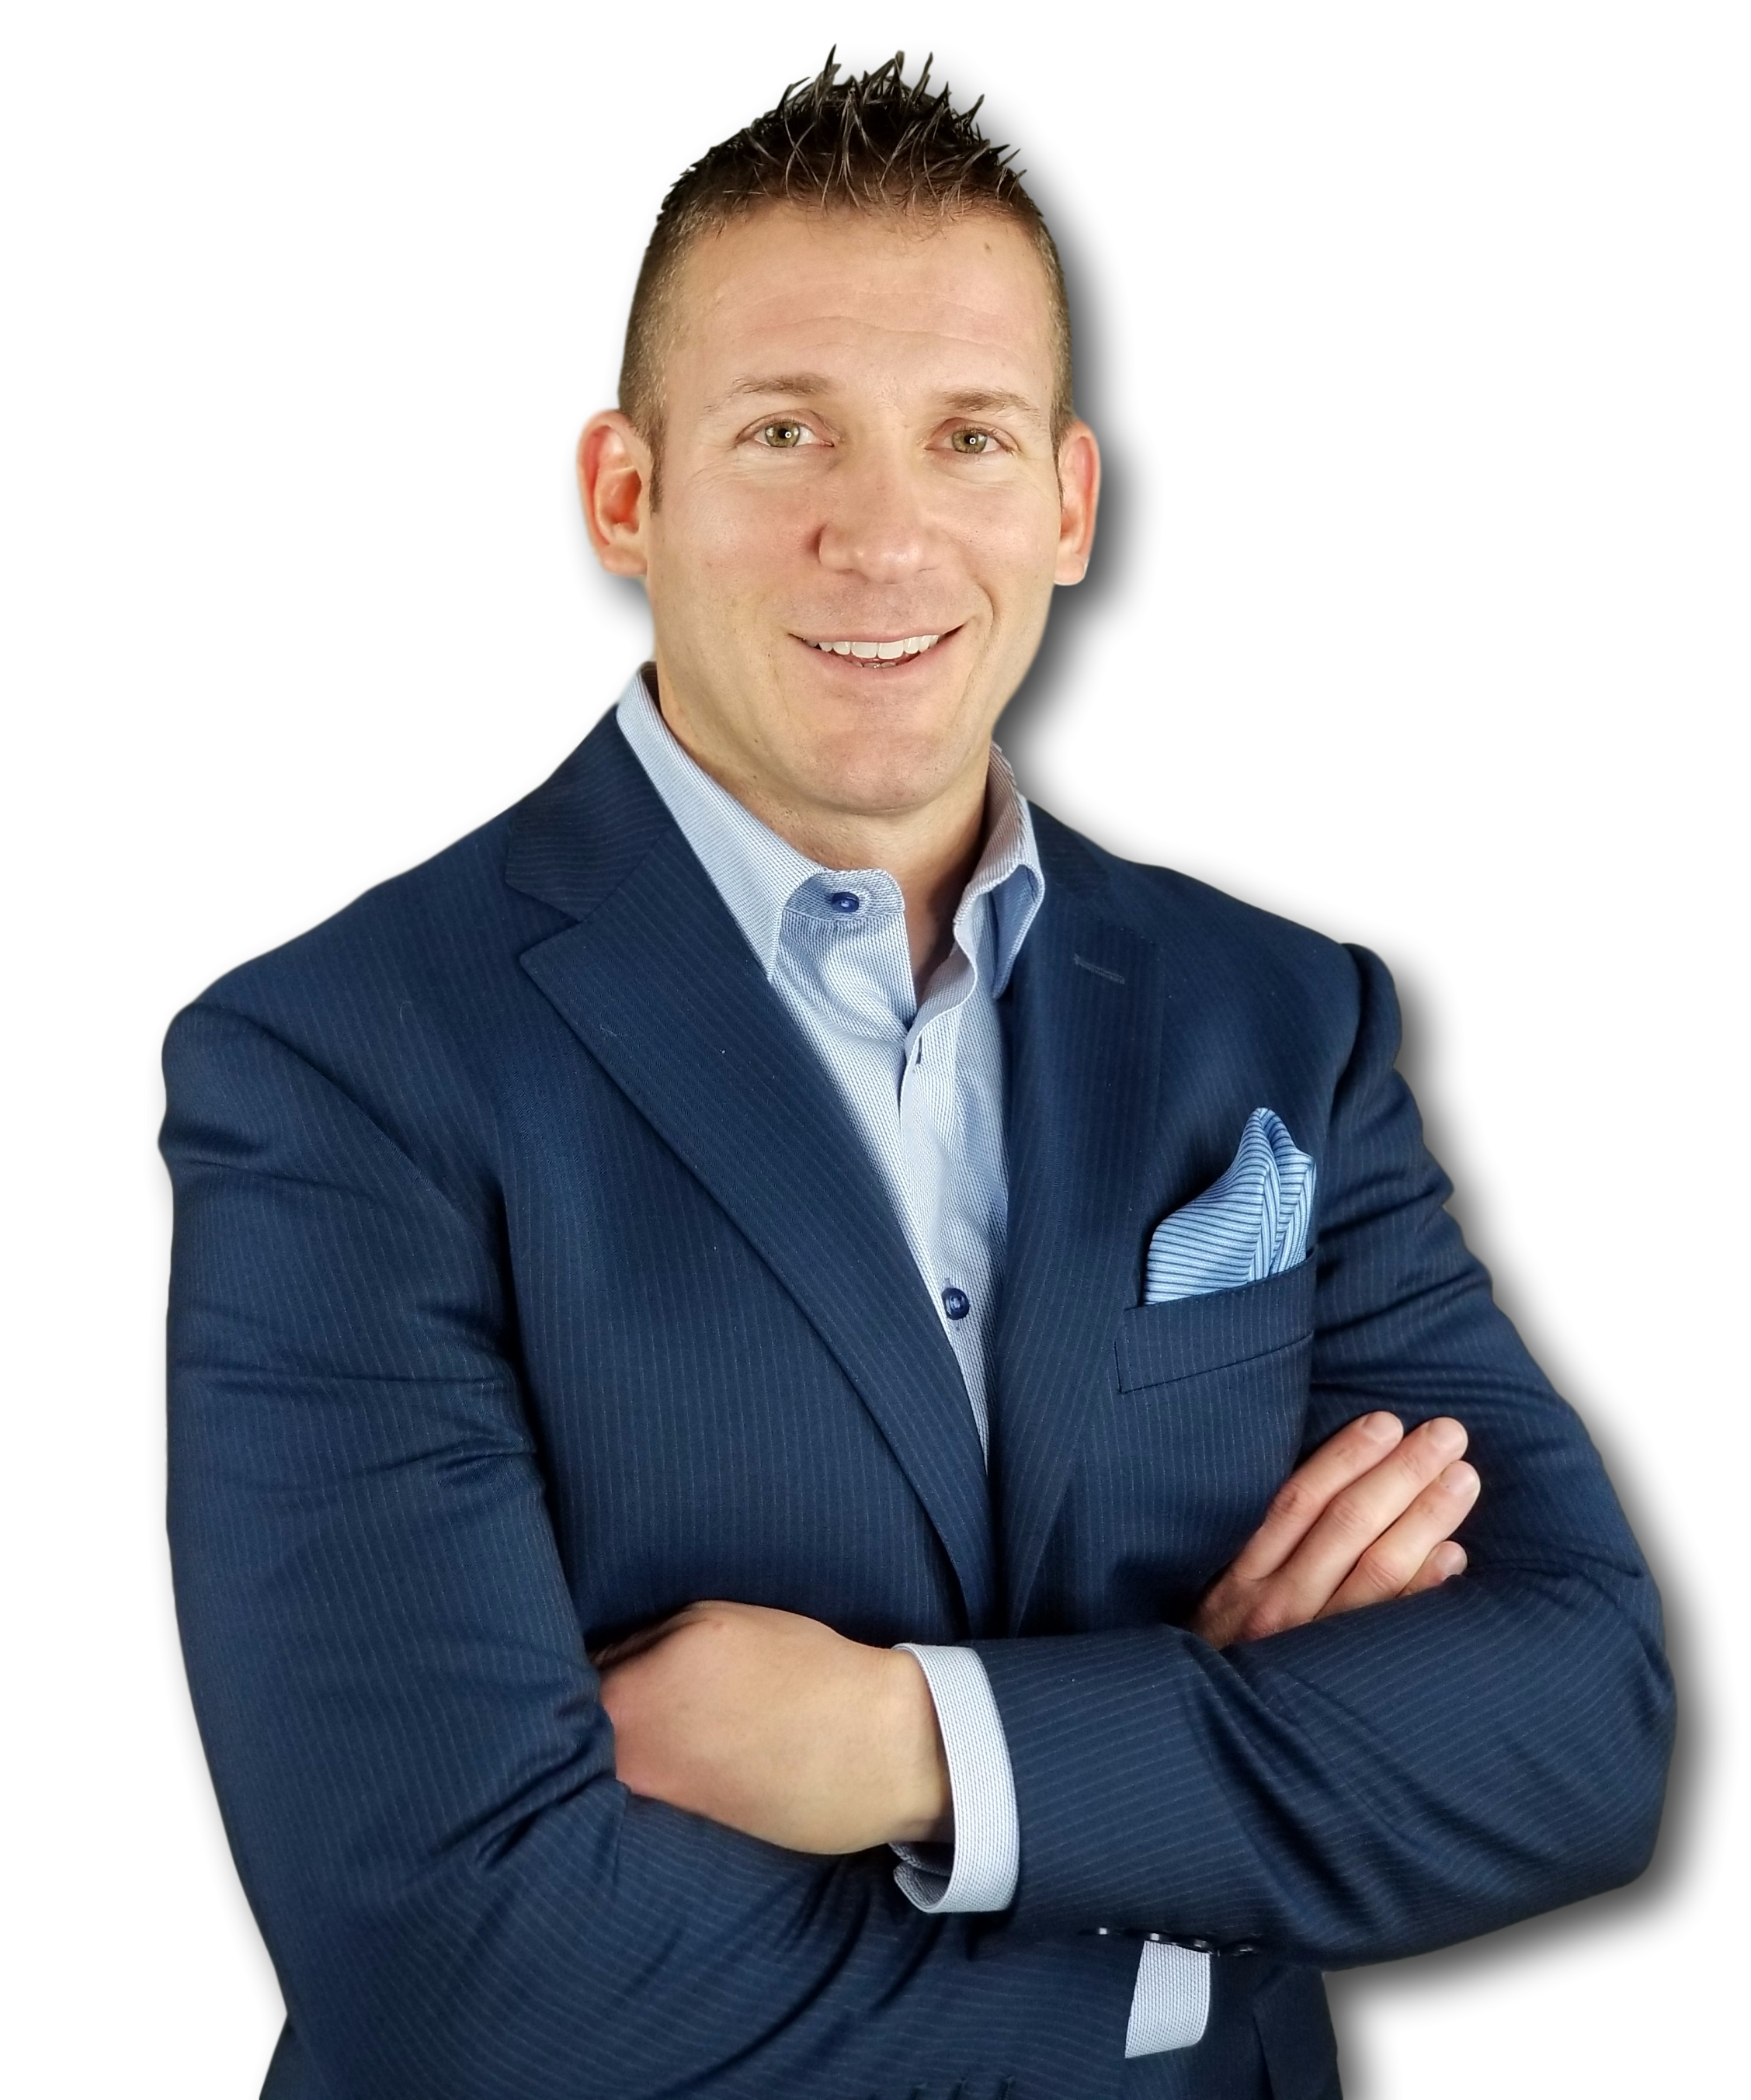 Eric Kulbe, Loan Officer at Guild Mortgage Company in Denver Colorado. Click here to apply for pre-approval.